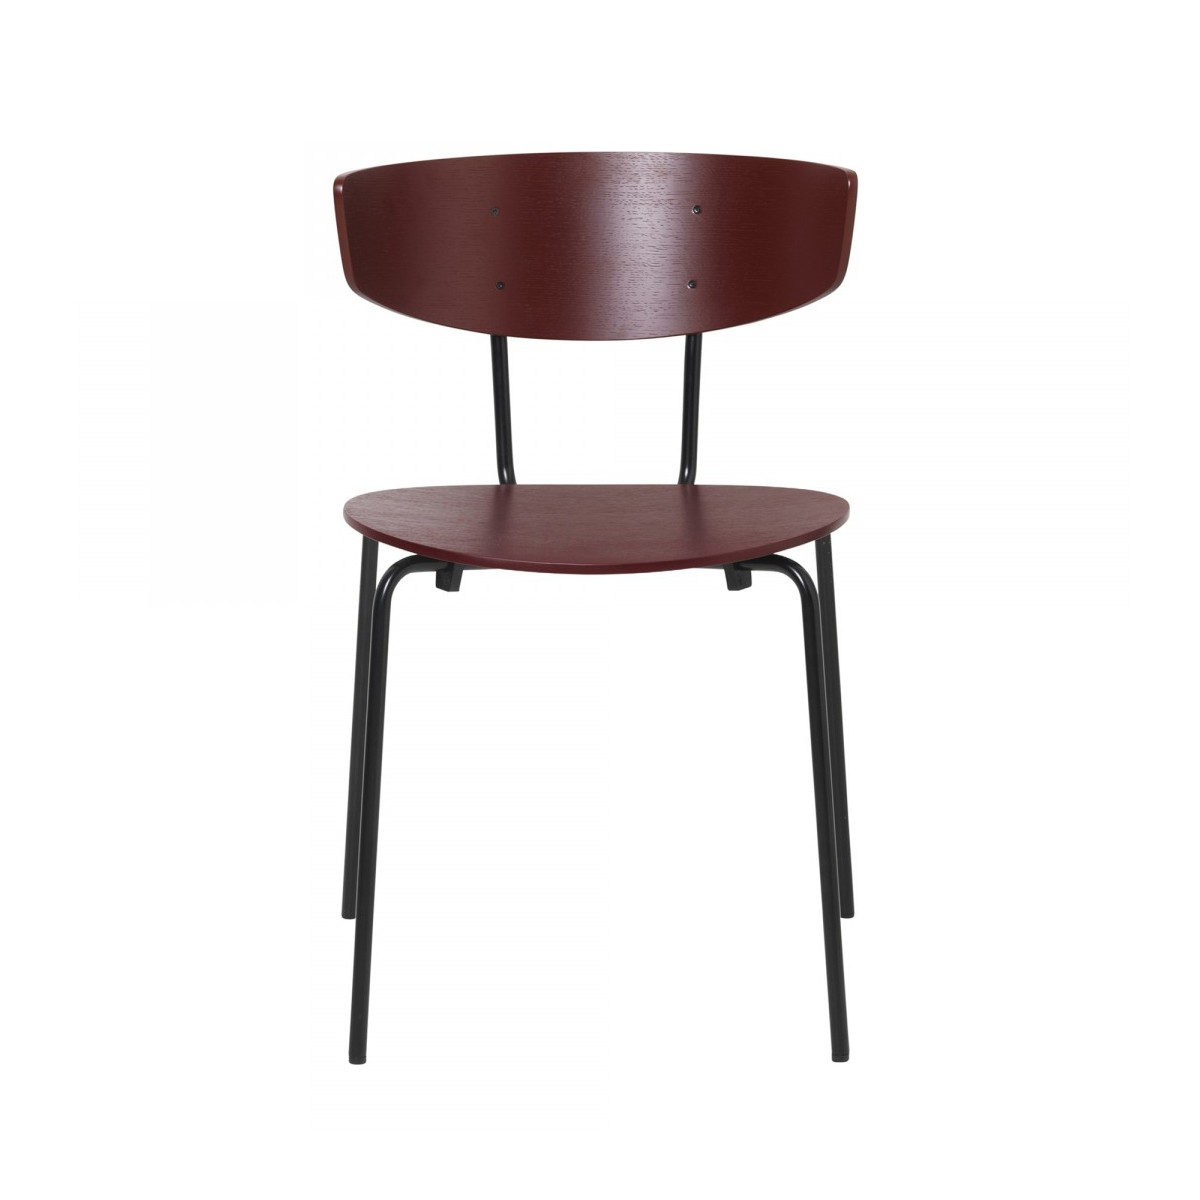 HERMAN burgundy chair - Ferm Living at COLONEL shop